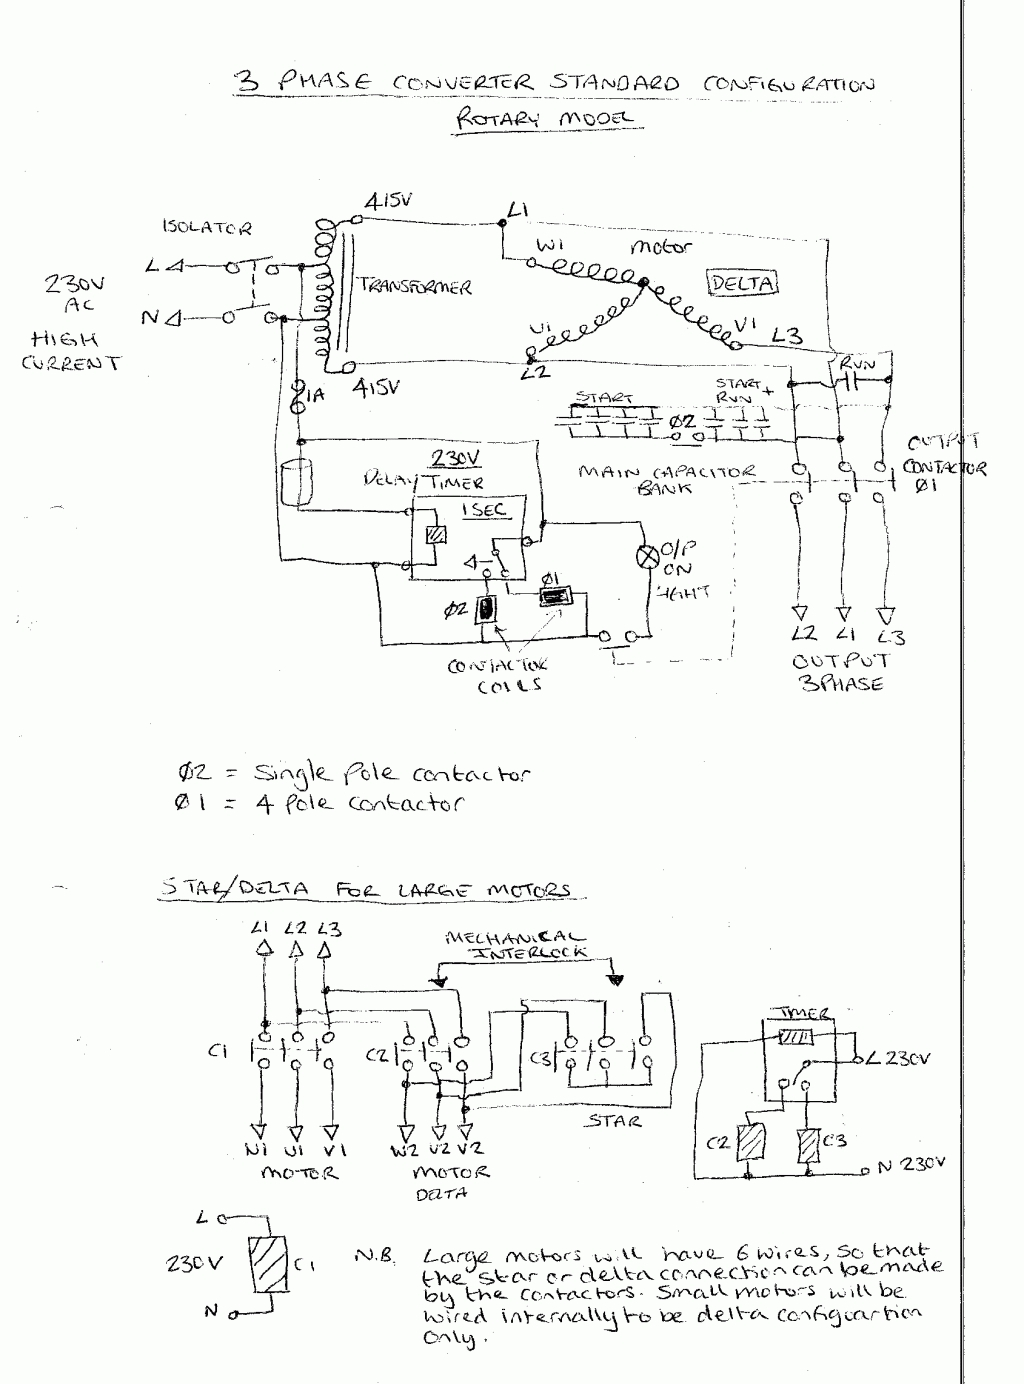 static phase converter wiring diagram | free wiring diagram ronk roto phase wiring diagram 208 volt 3 phase wiring diagram